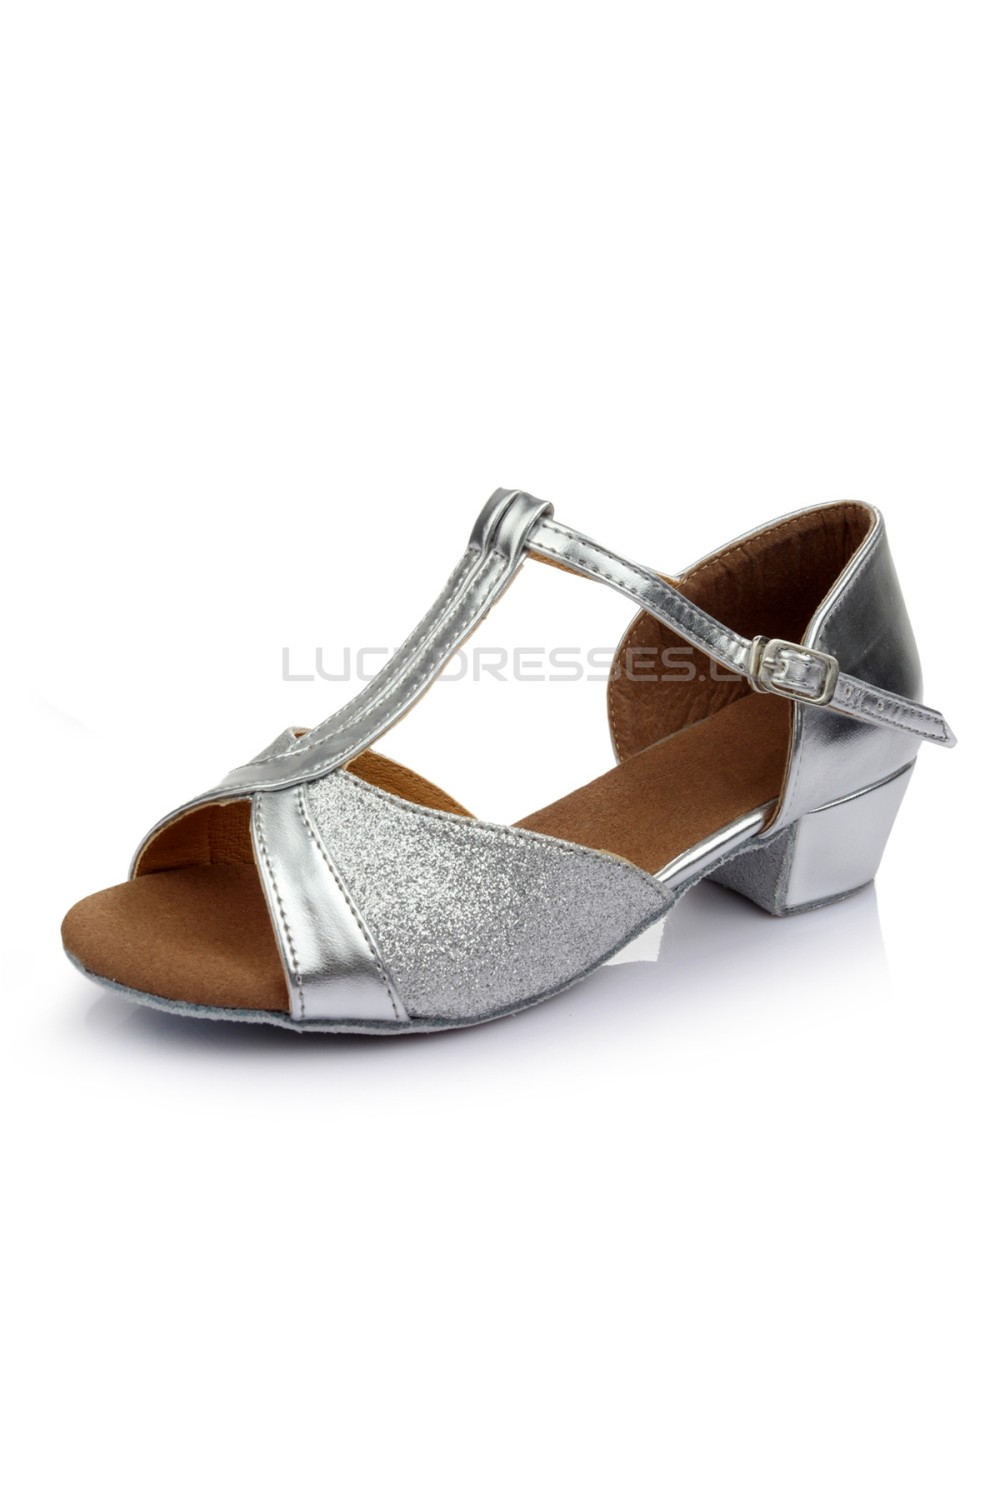 Women s Kids  Silver Sparkling Glitter Flats Latin T-Strap Dance Shoes  Chunky Heels Wedding Party Shoes D601031 3dd8fea7e4